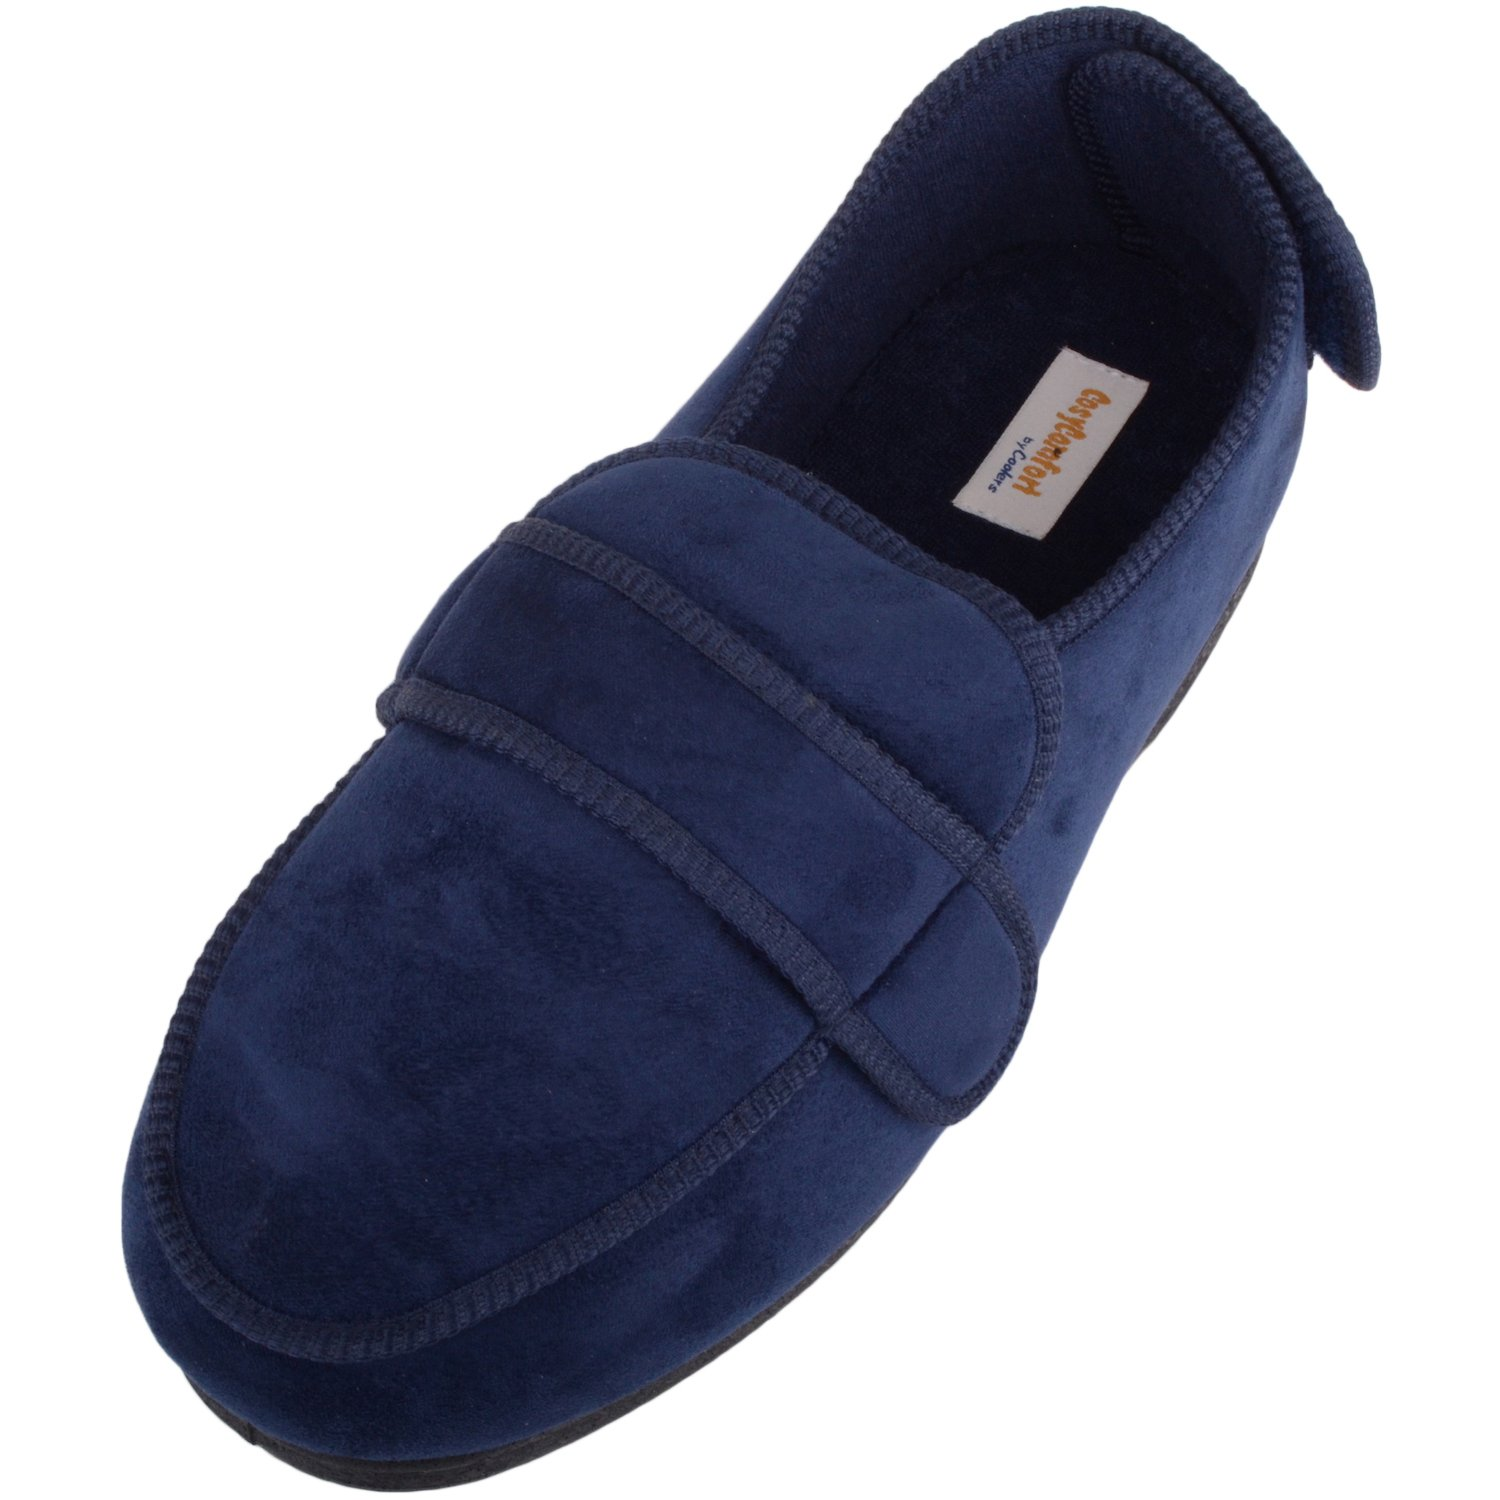 ABSOLUTE FOOTWEAR Mens Microsuede EEE Wide Fitting Slippers/Boots with Ripper Fastening - Navy - US 10